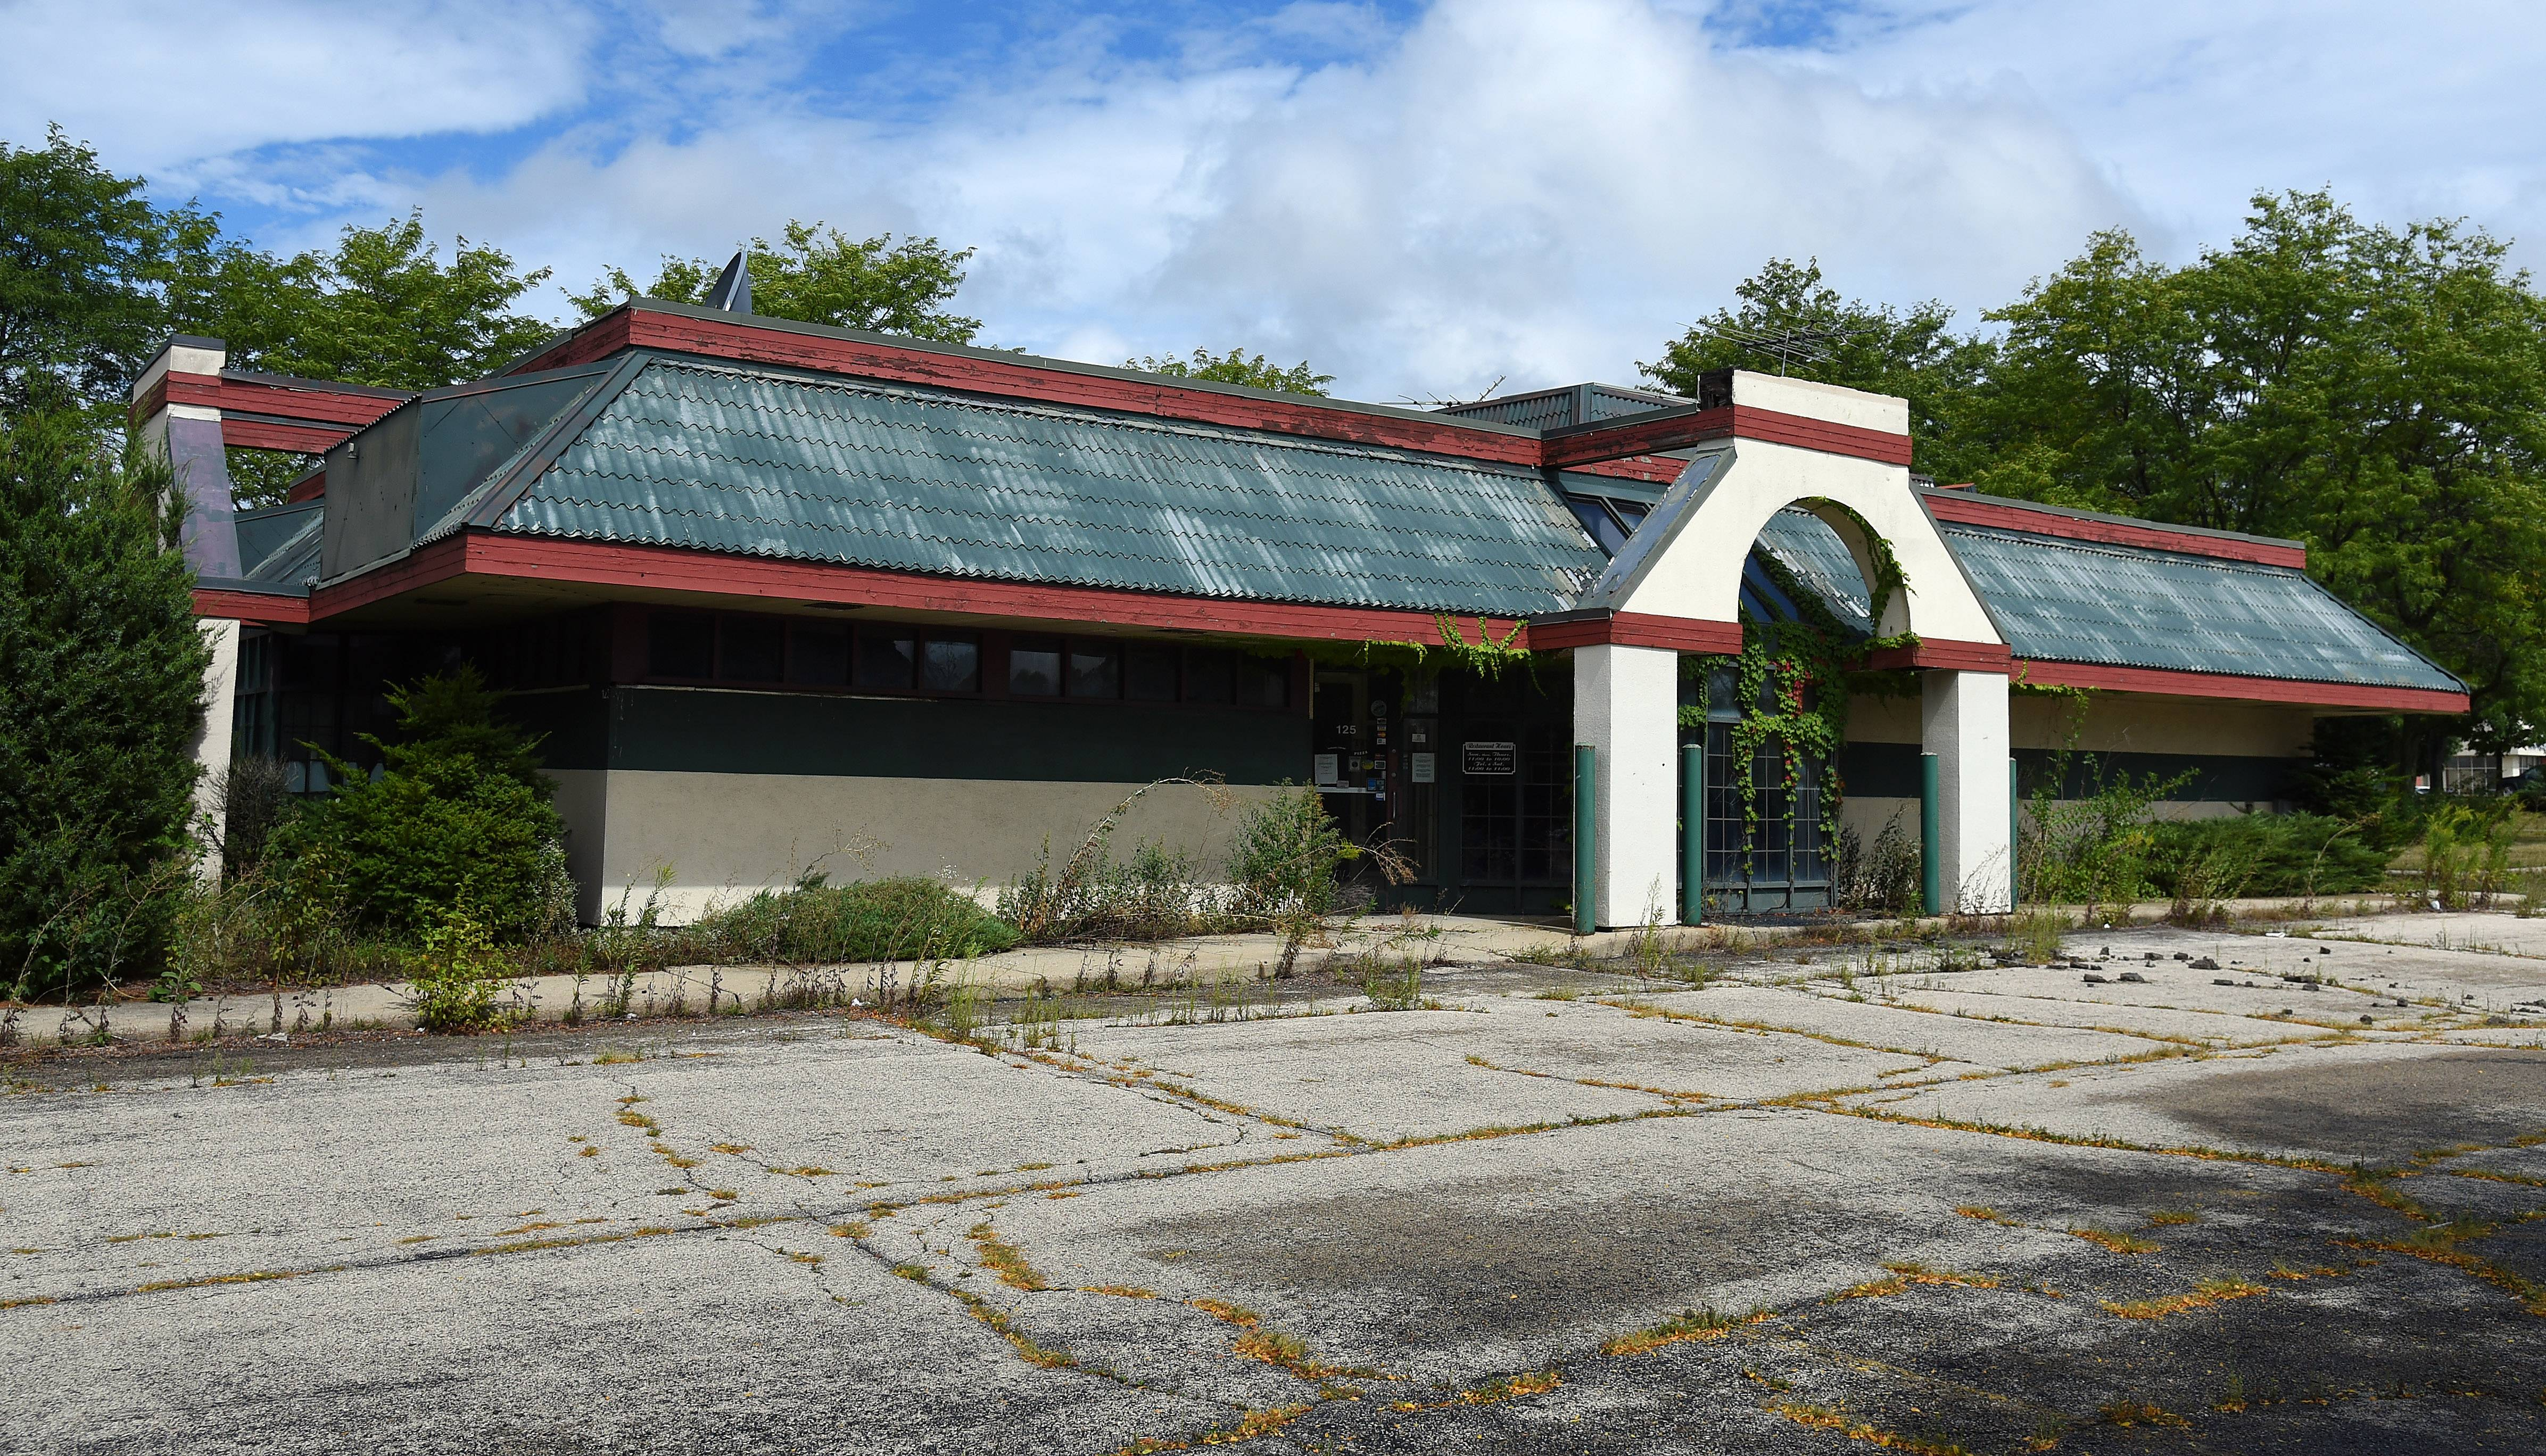 The former Rosati's Pizza building along Route 31 in Carpentersville, which has been vacant for several years, is expected to be torn down this fall and replaced with a 5,500-square-foot multi-tenant structure.